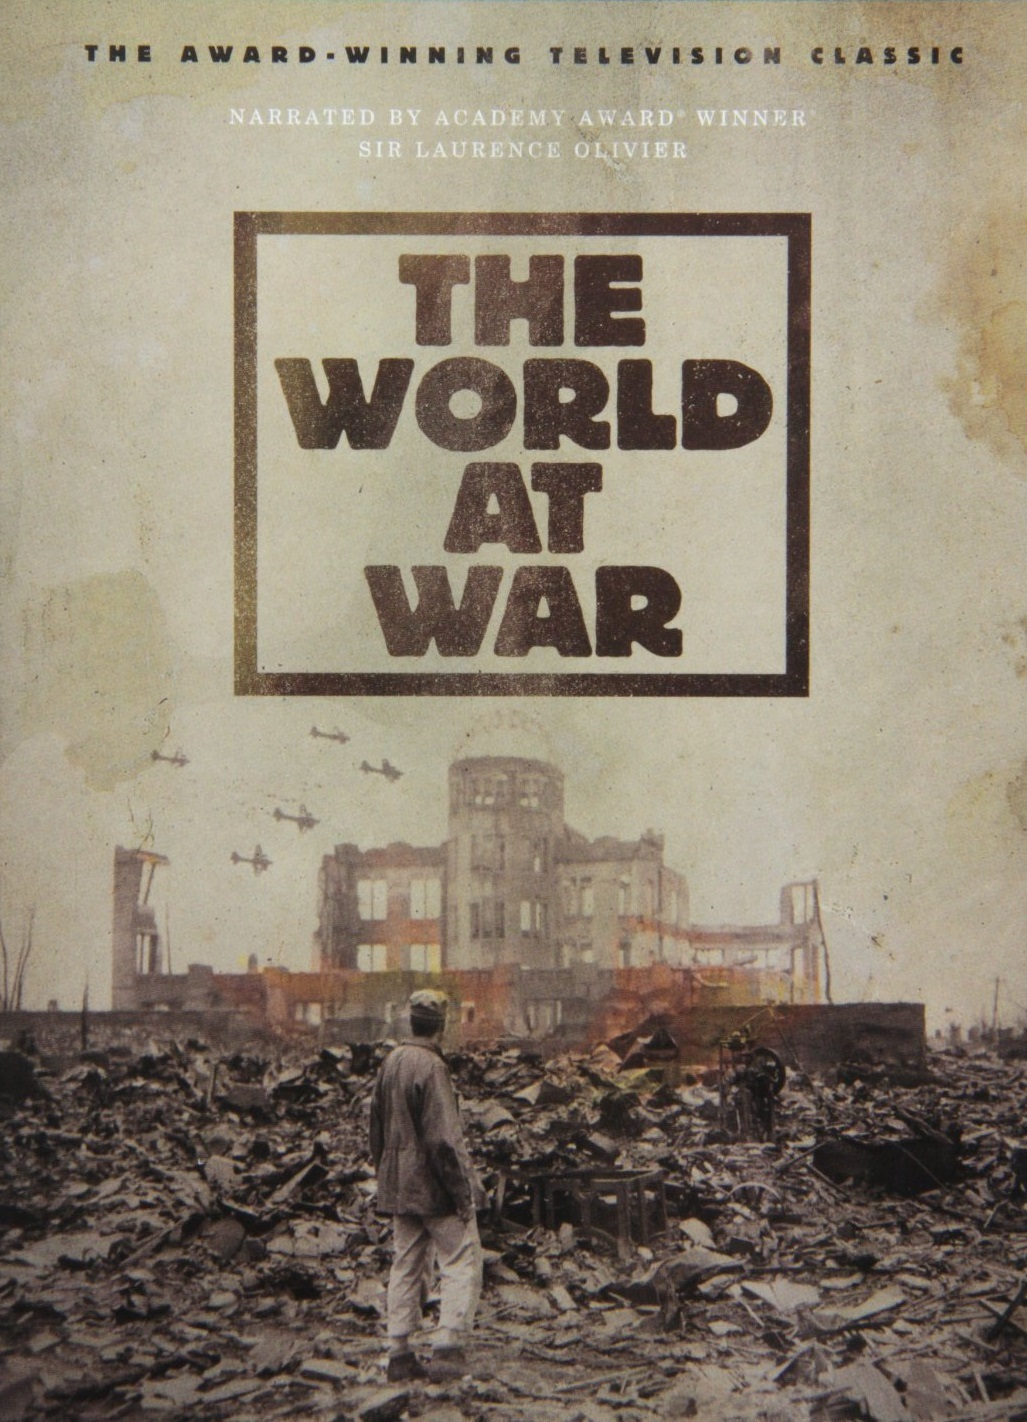 How Many Episodes Of Quot The World At War Quot Have You Seen Imdb